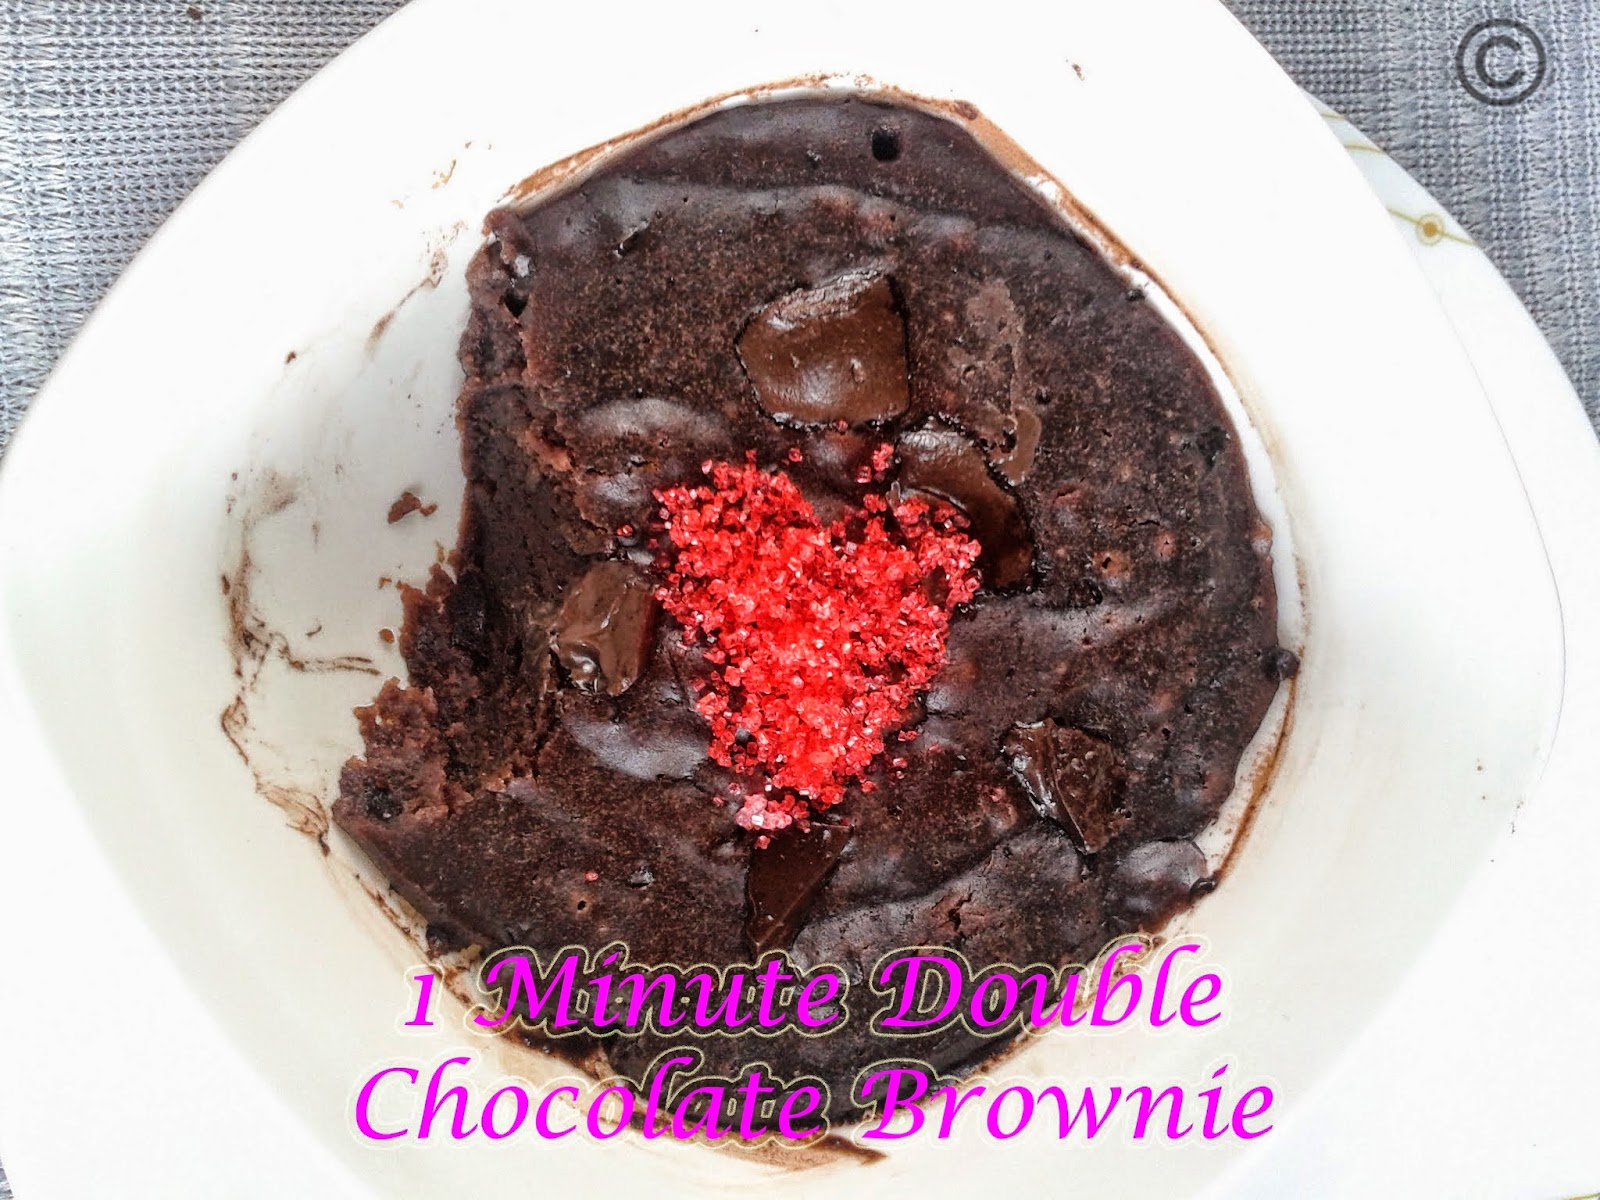 Double-chocolate-1-minute-brownie